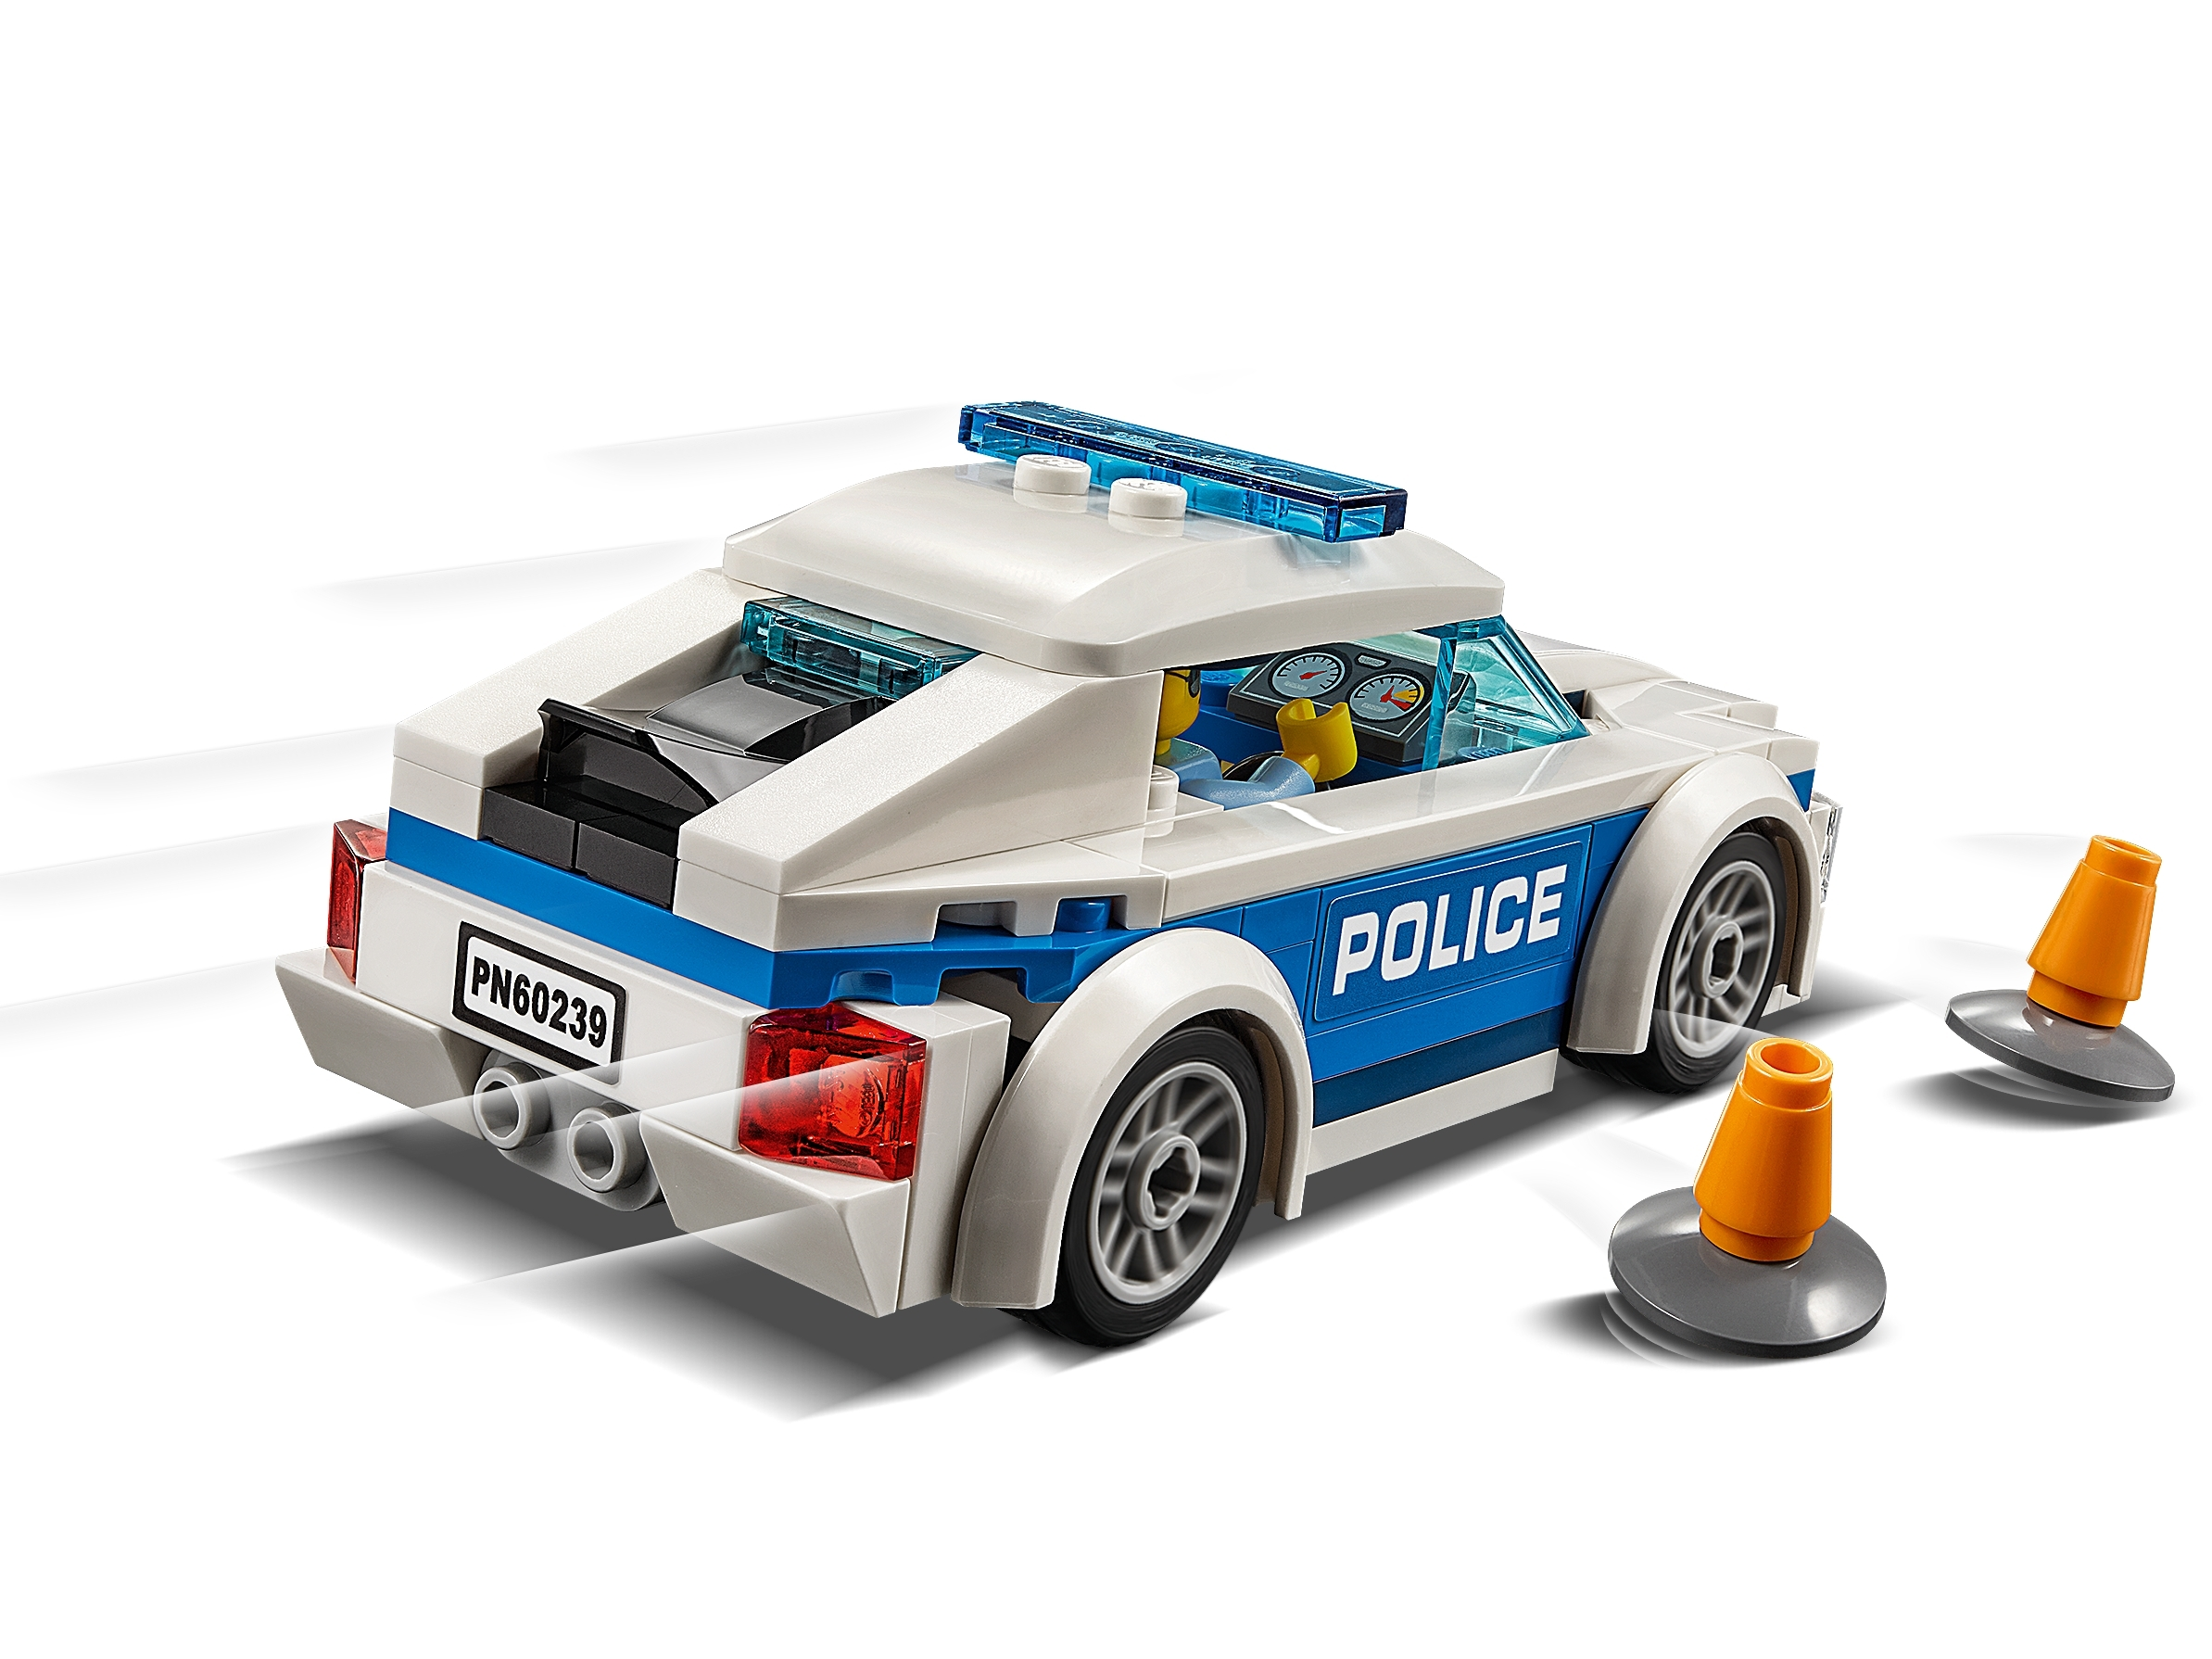 Police Patrol Car 60239 City Buy Online At The Official Lego Shop Us